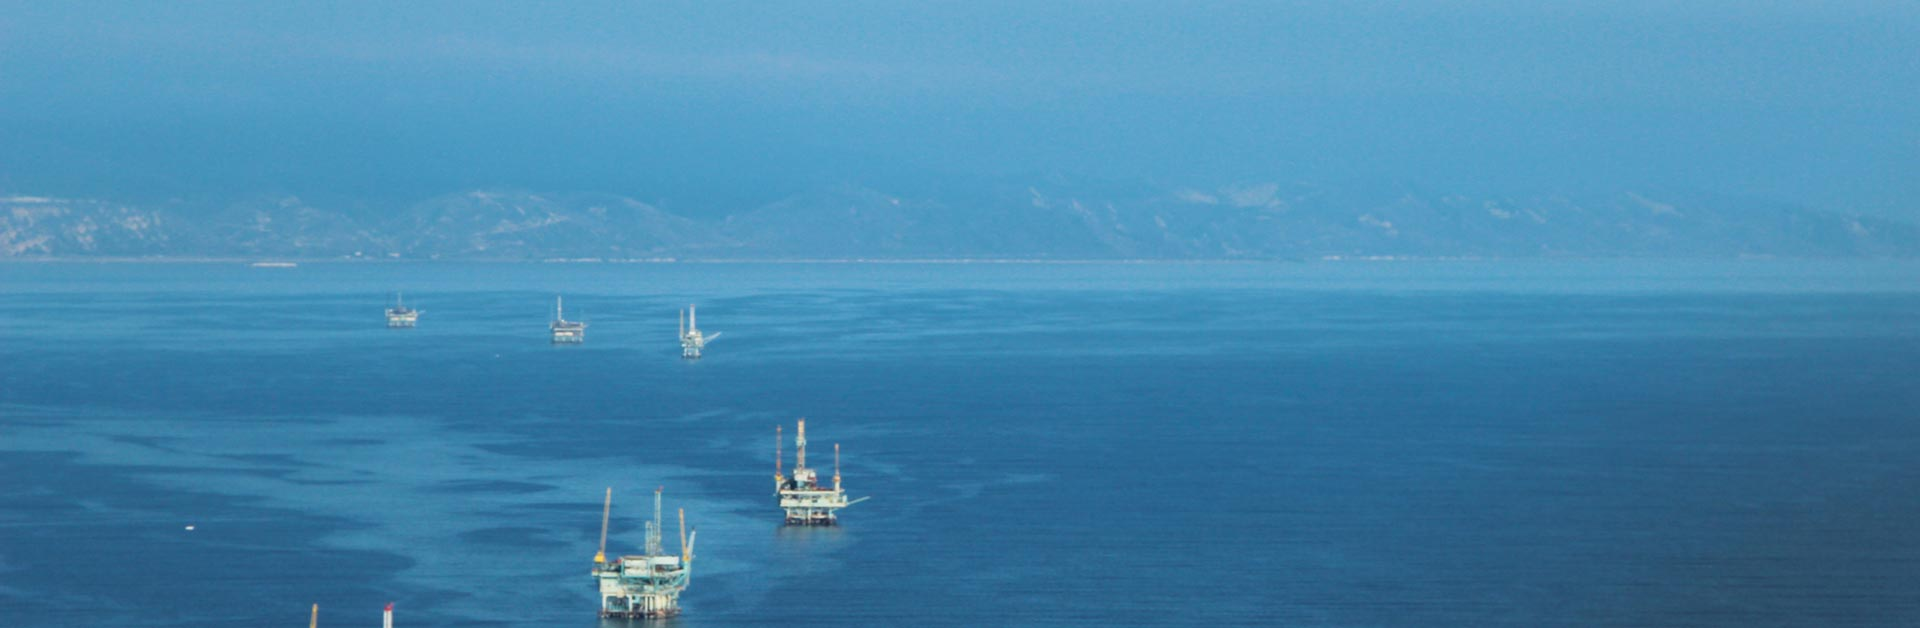 A row of decommissioned oil platforms along the Santa Barbara channel.